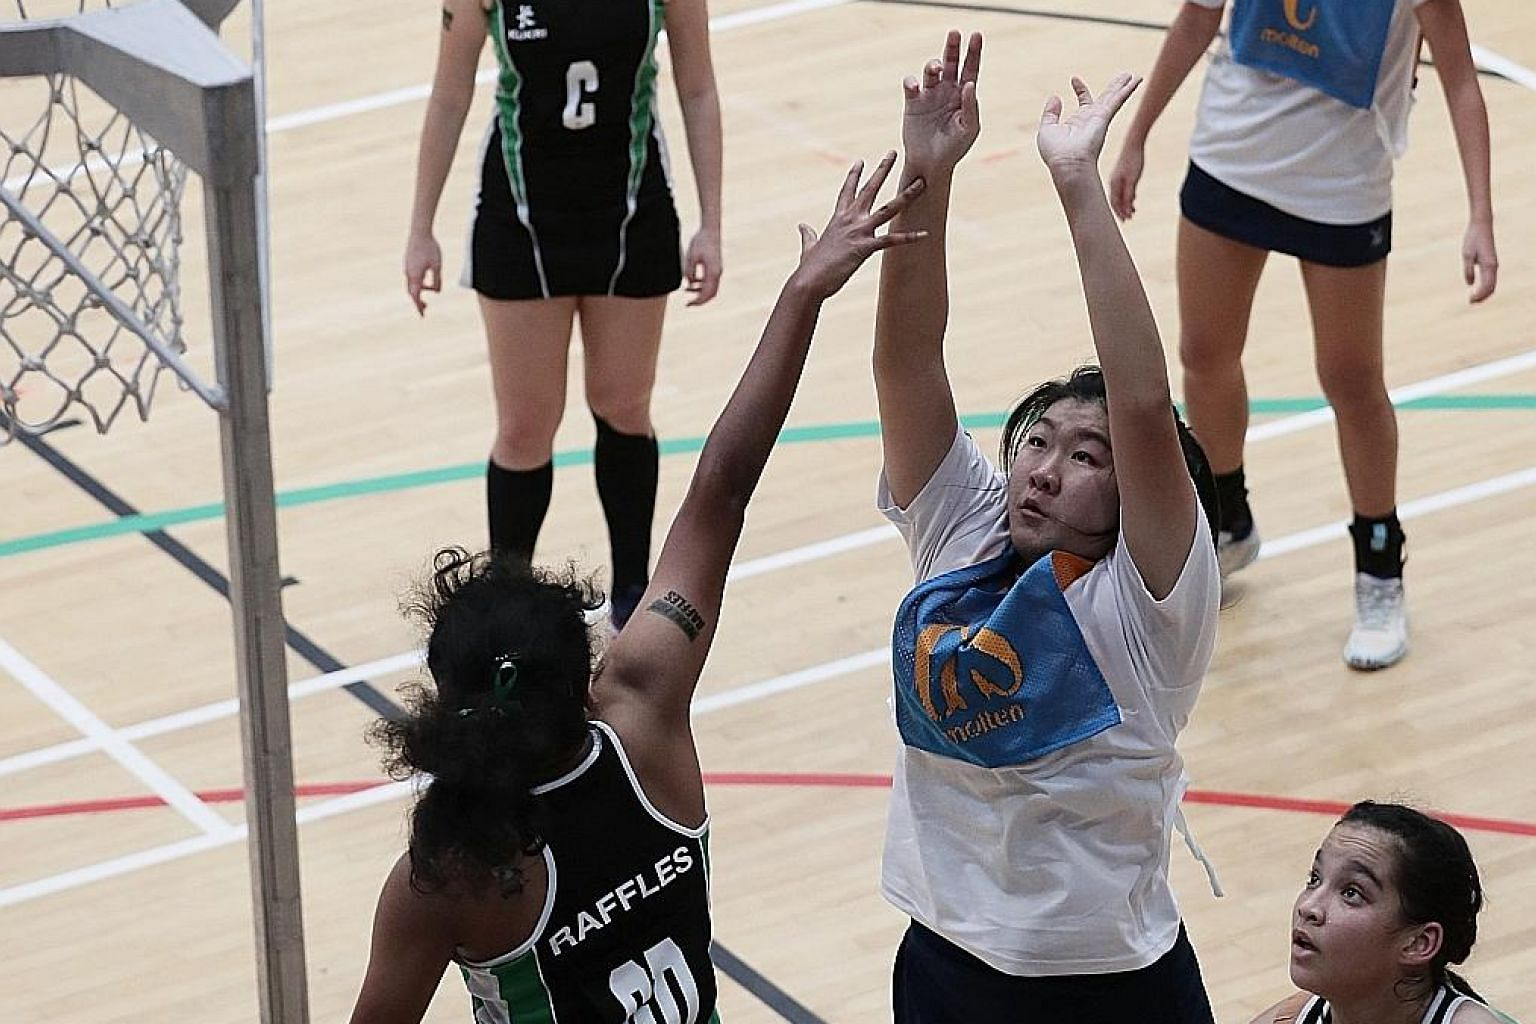 Anglo-Chinese Junior College's goal-shooter Syntyche Yeo taking a shot while guarded by Raffles Institution captain Keziah Vickraman in the A Division netball final at Jurong East Sports Hall yesterday. Syntyche scored 49 of her team's 53 points. ST